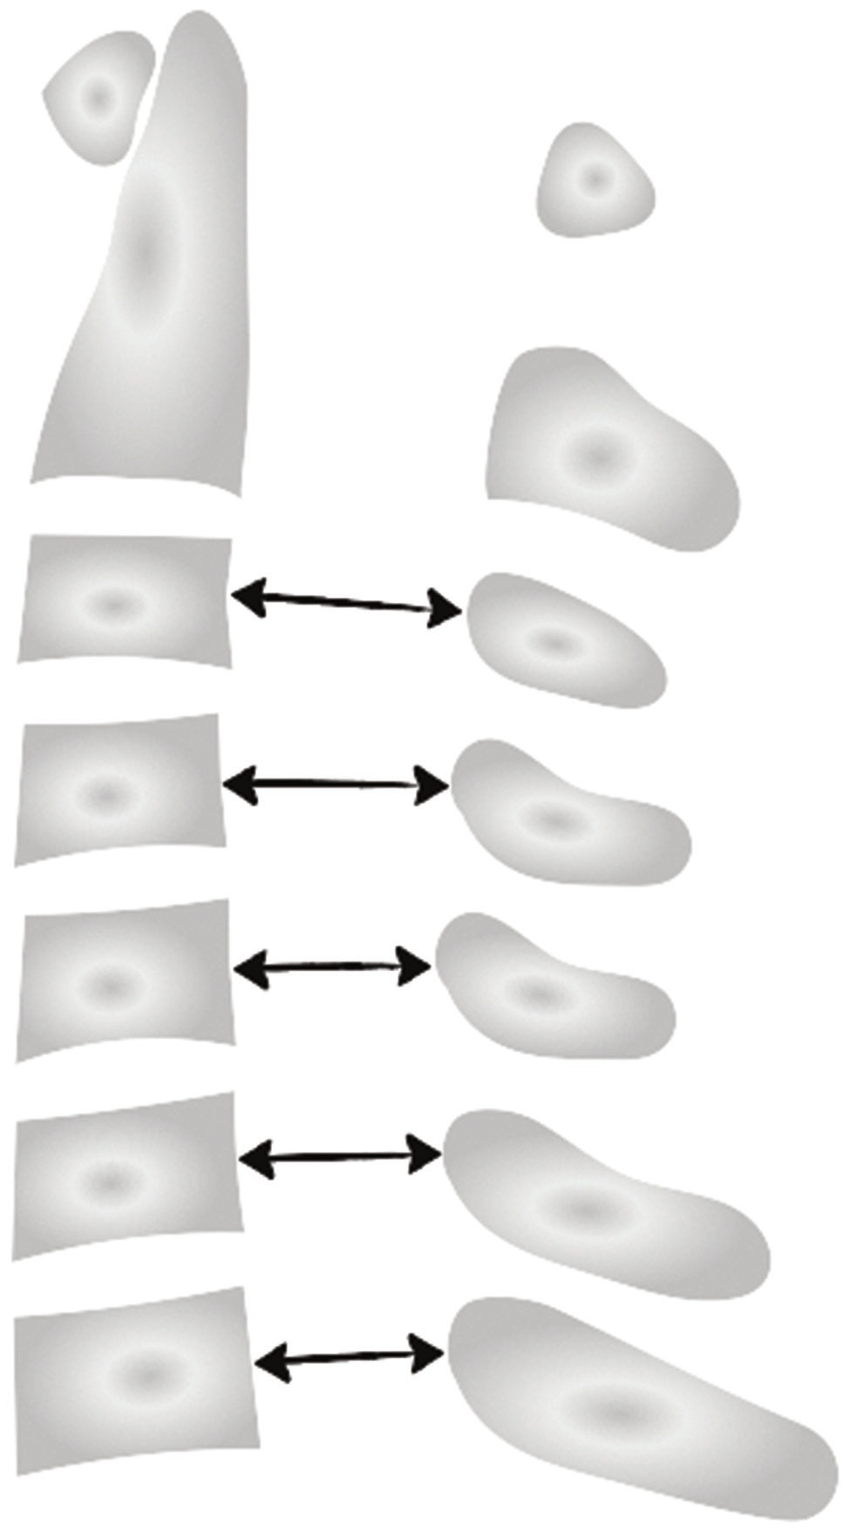 medium resolution of measurement of the spinal canal diameter at the cervical spinal column